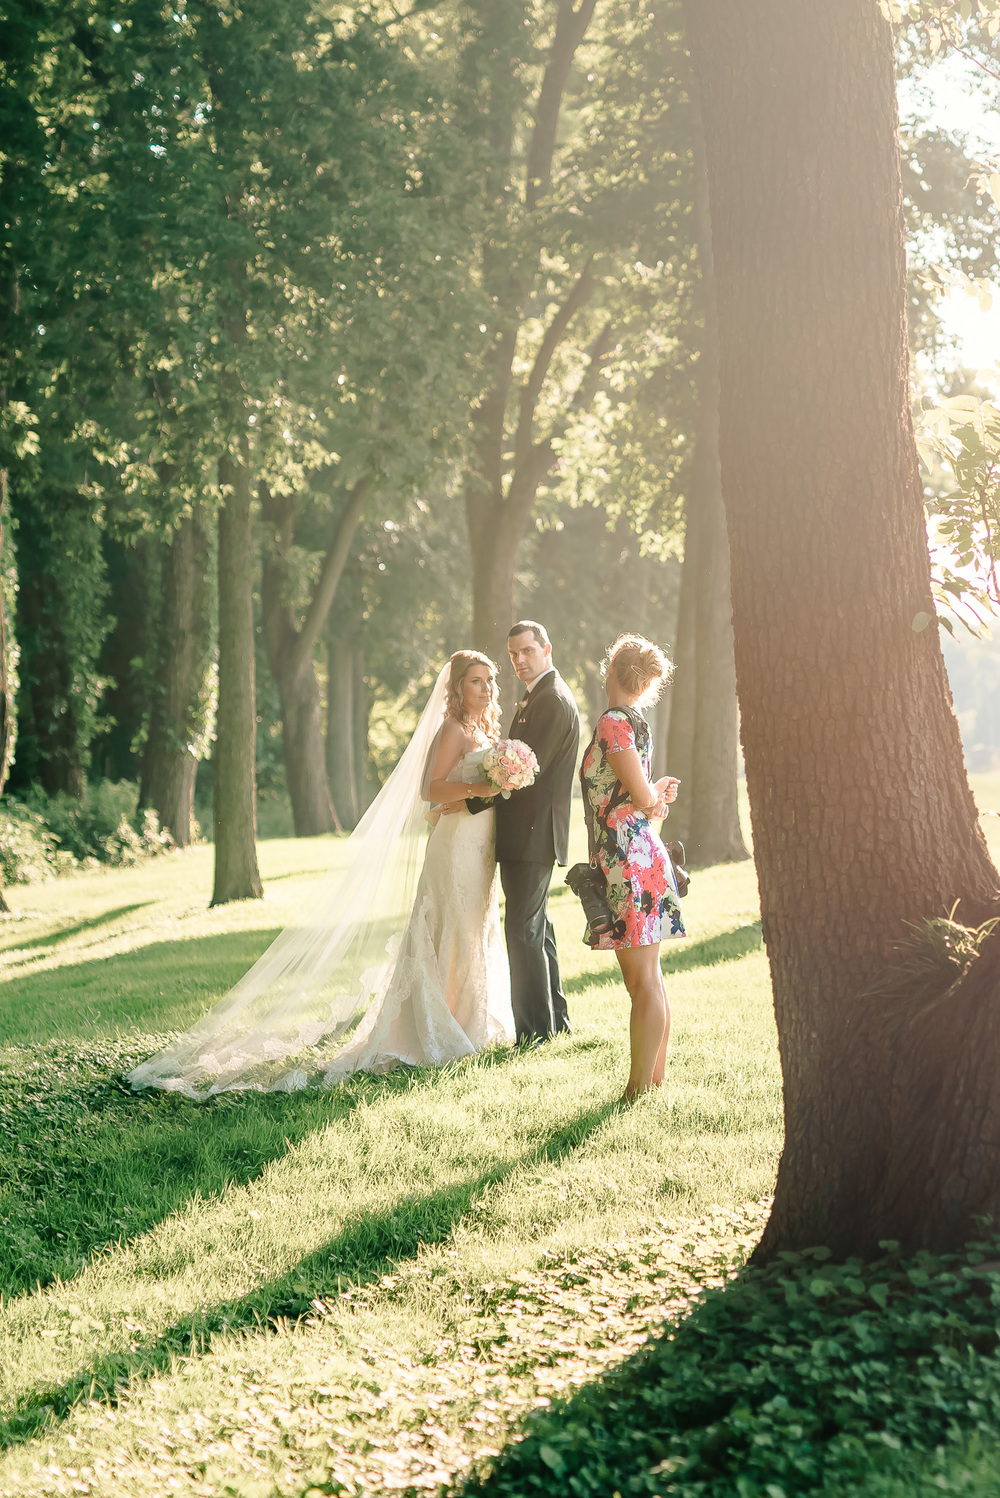 Wedding photographer behind the scenes_Stephanie Kopf Photography